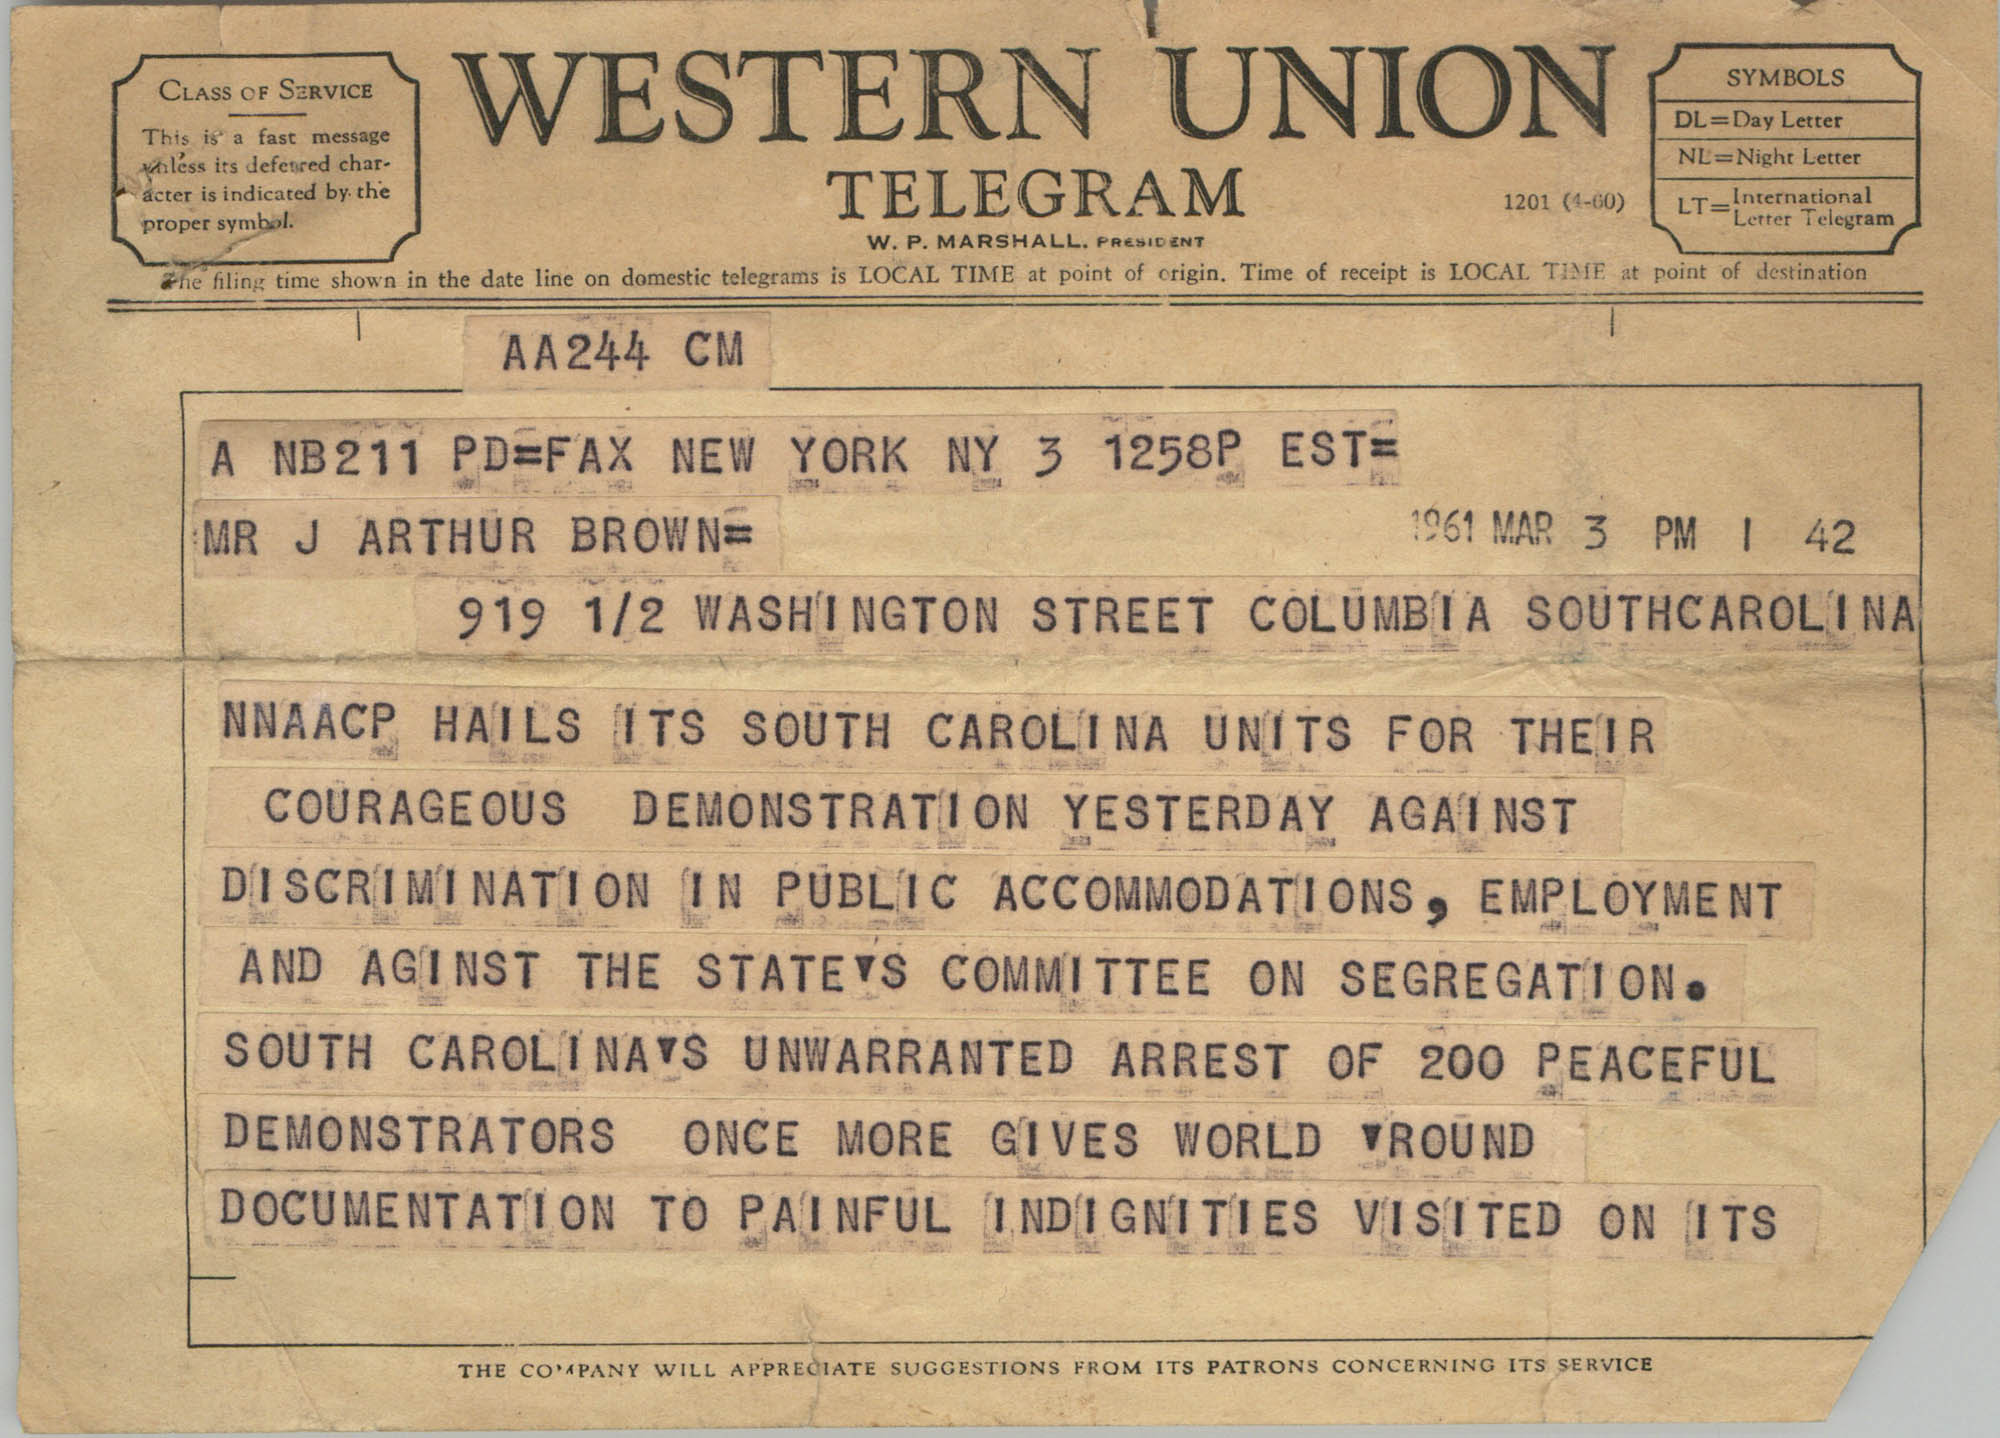 Telegram from Roy Wilkins to J. Arthur Brown, March 3, 1961